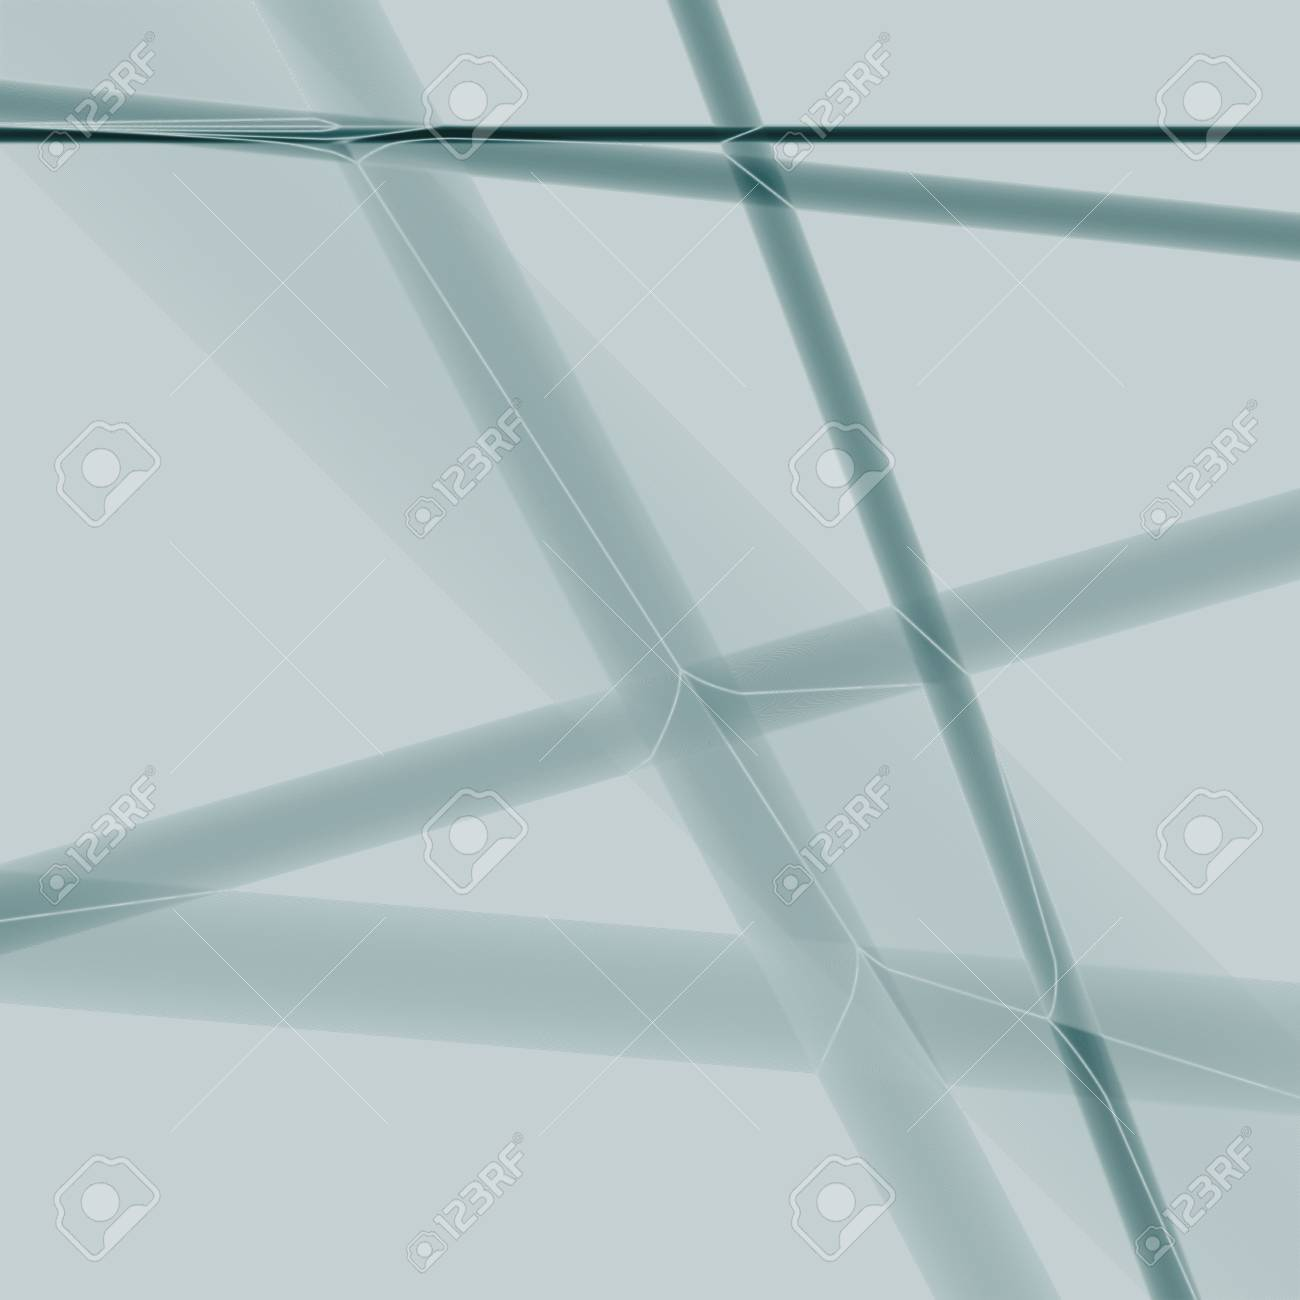 Abstract background or wallpaper Stock Photo - 3287815